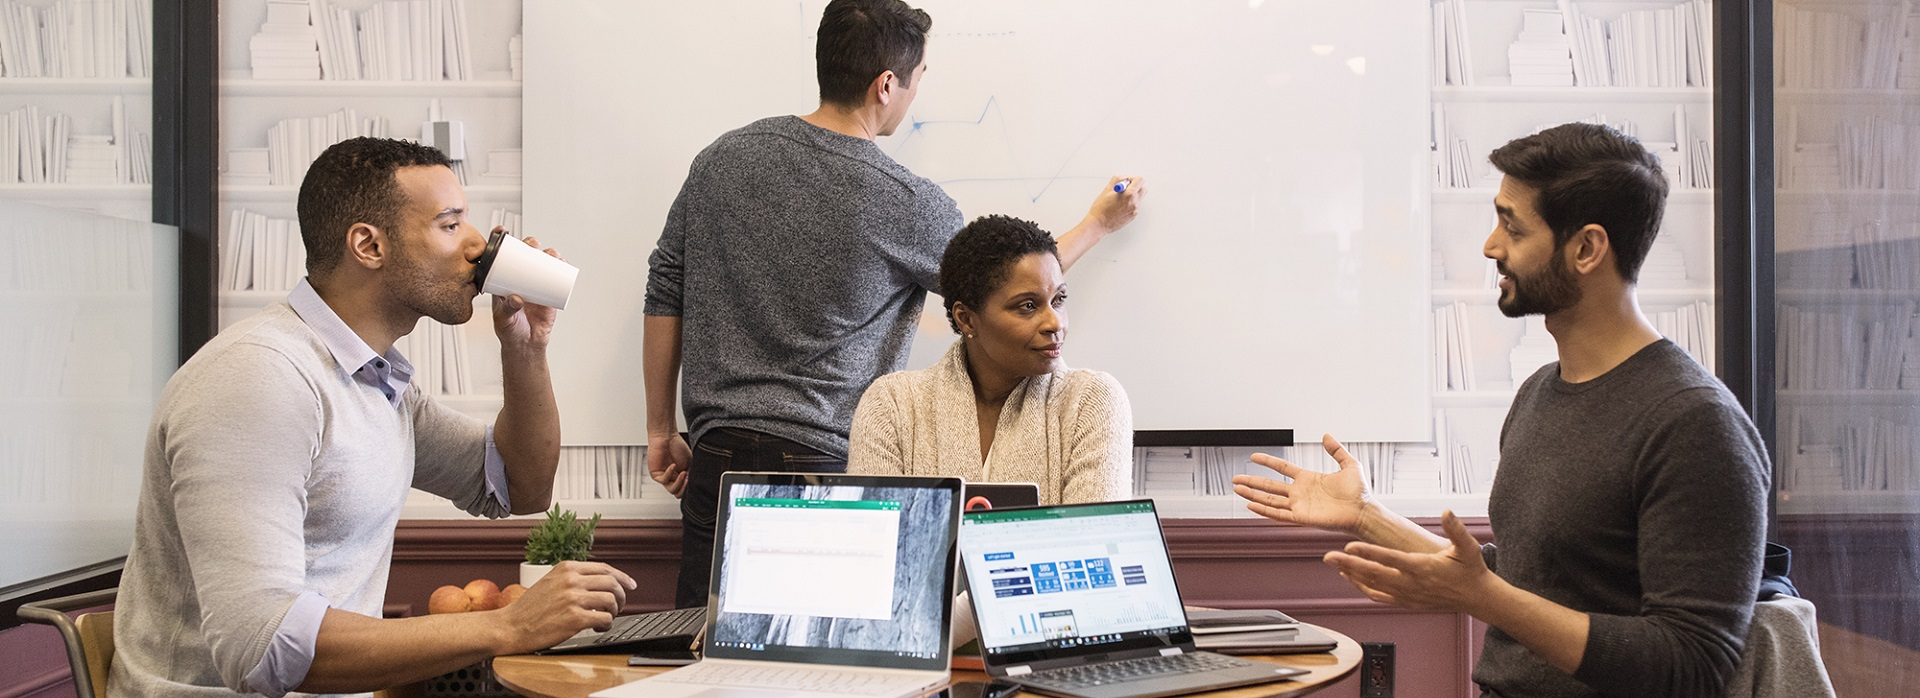 Building a modern, responsive workplace at Microsoft